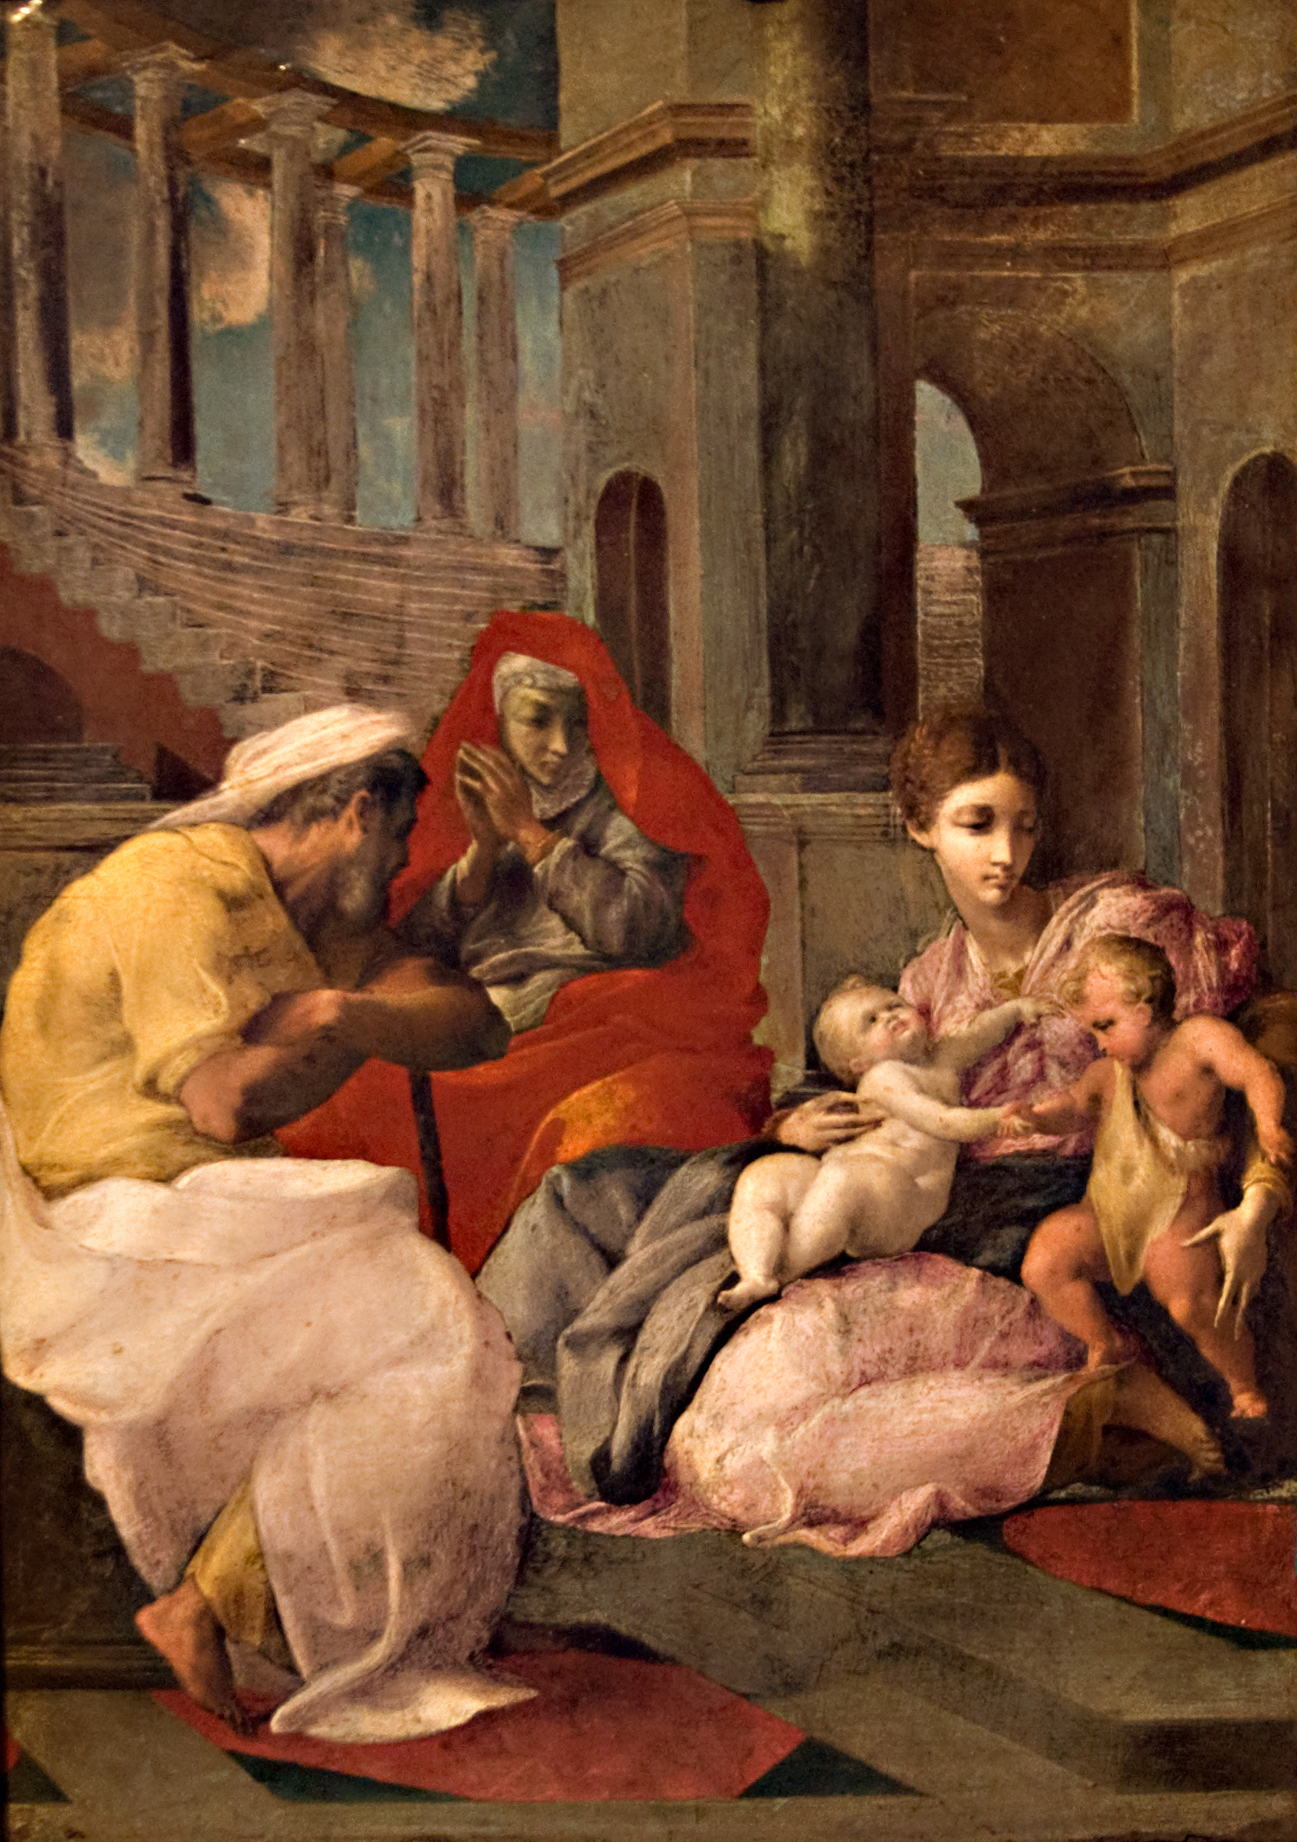 holy family with st john The holy family with saint anne and the infant john the baptist  see francisco  de borja de san román y fernández, el greco en toledo, madrid, 1910: 193.